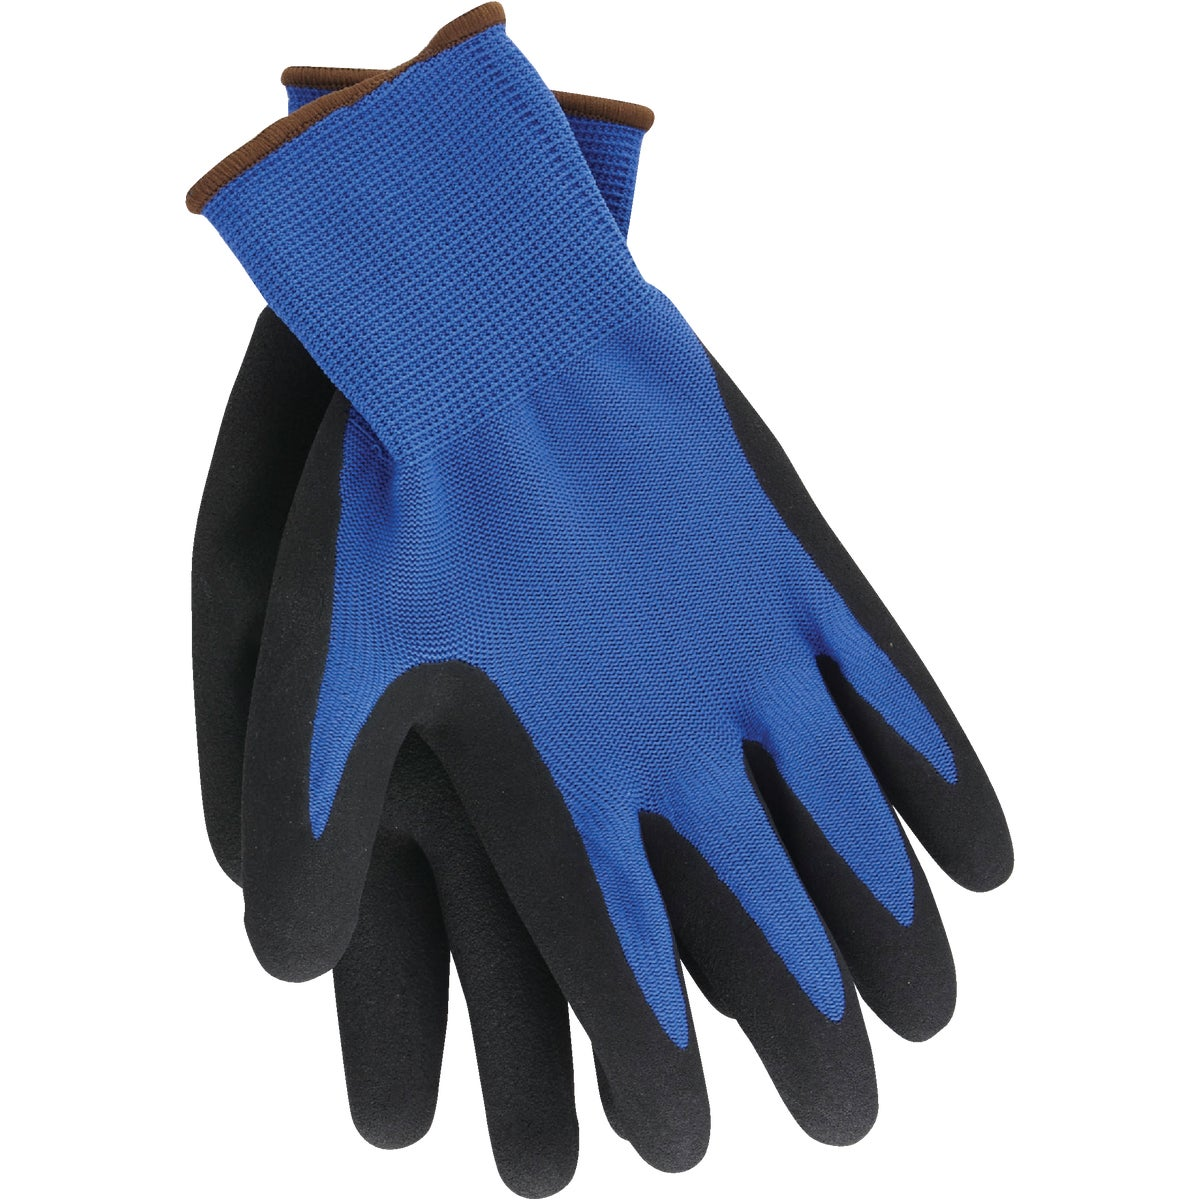 3PK LRG MEN CTDGRP GLOVE - 705641 by Do it Best